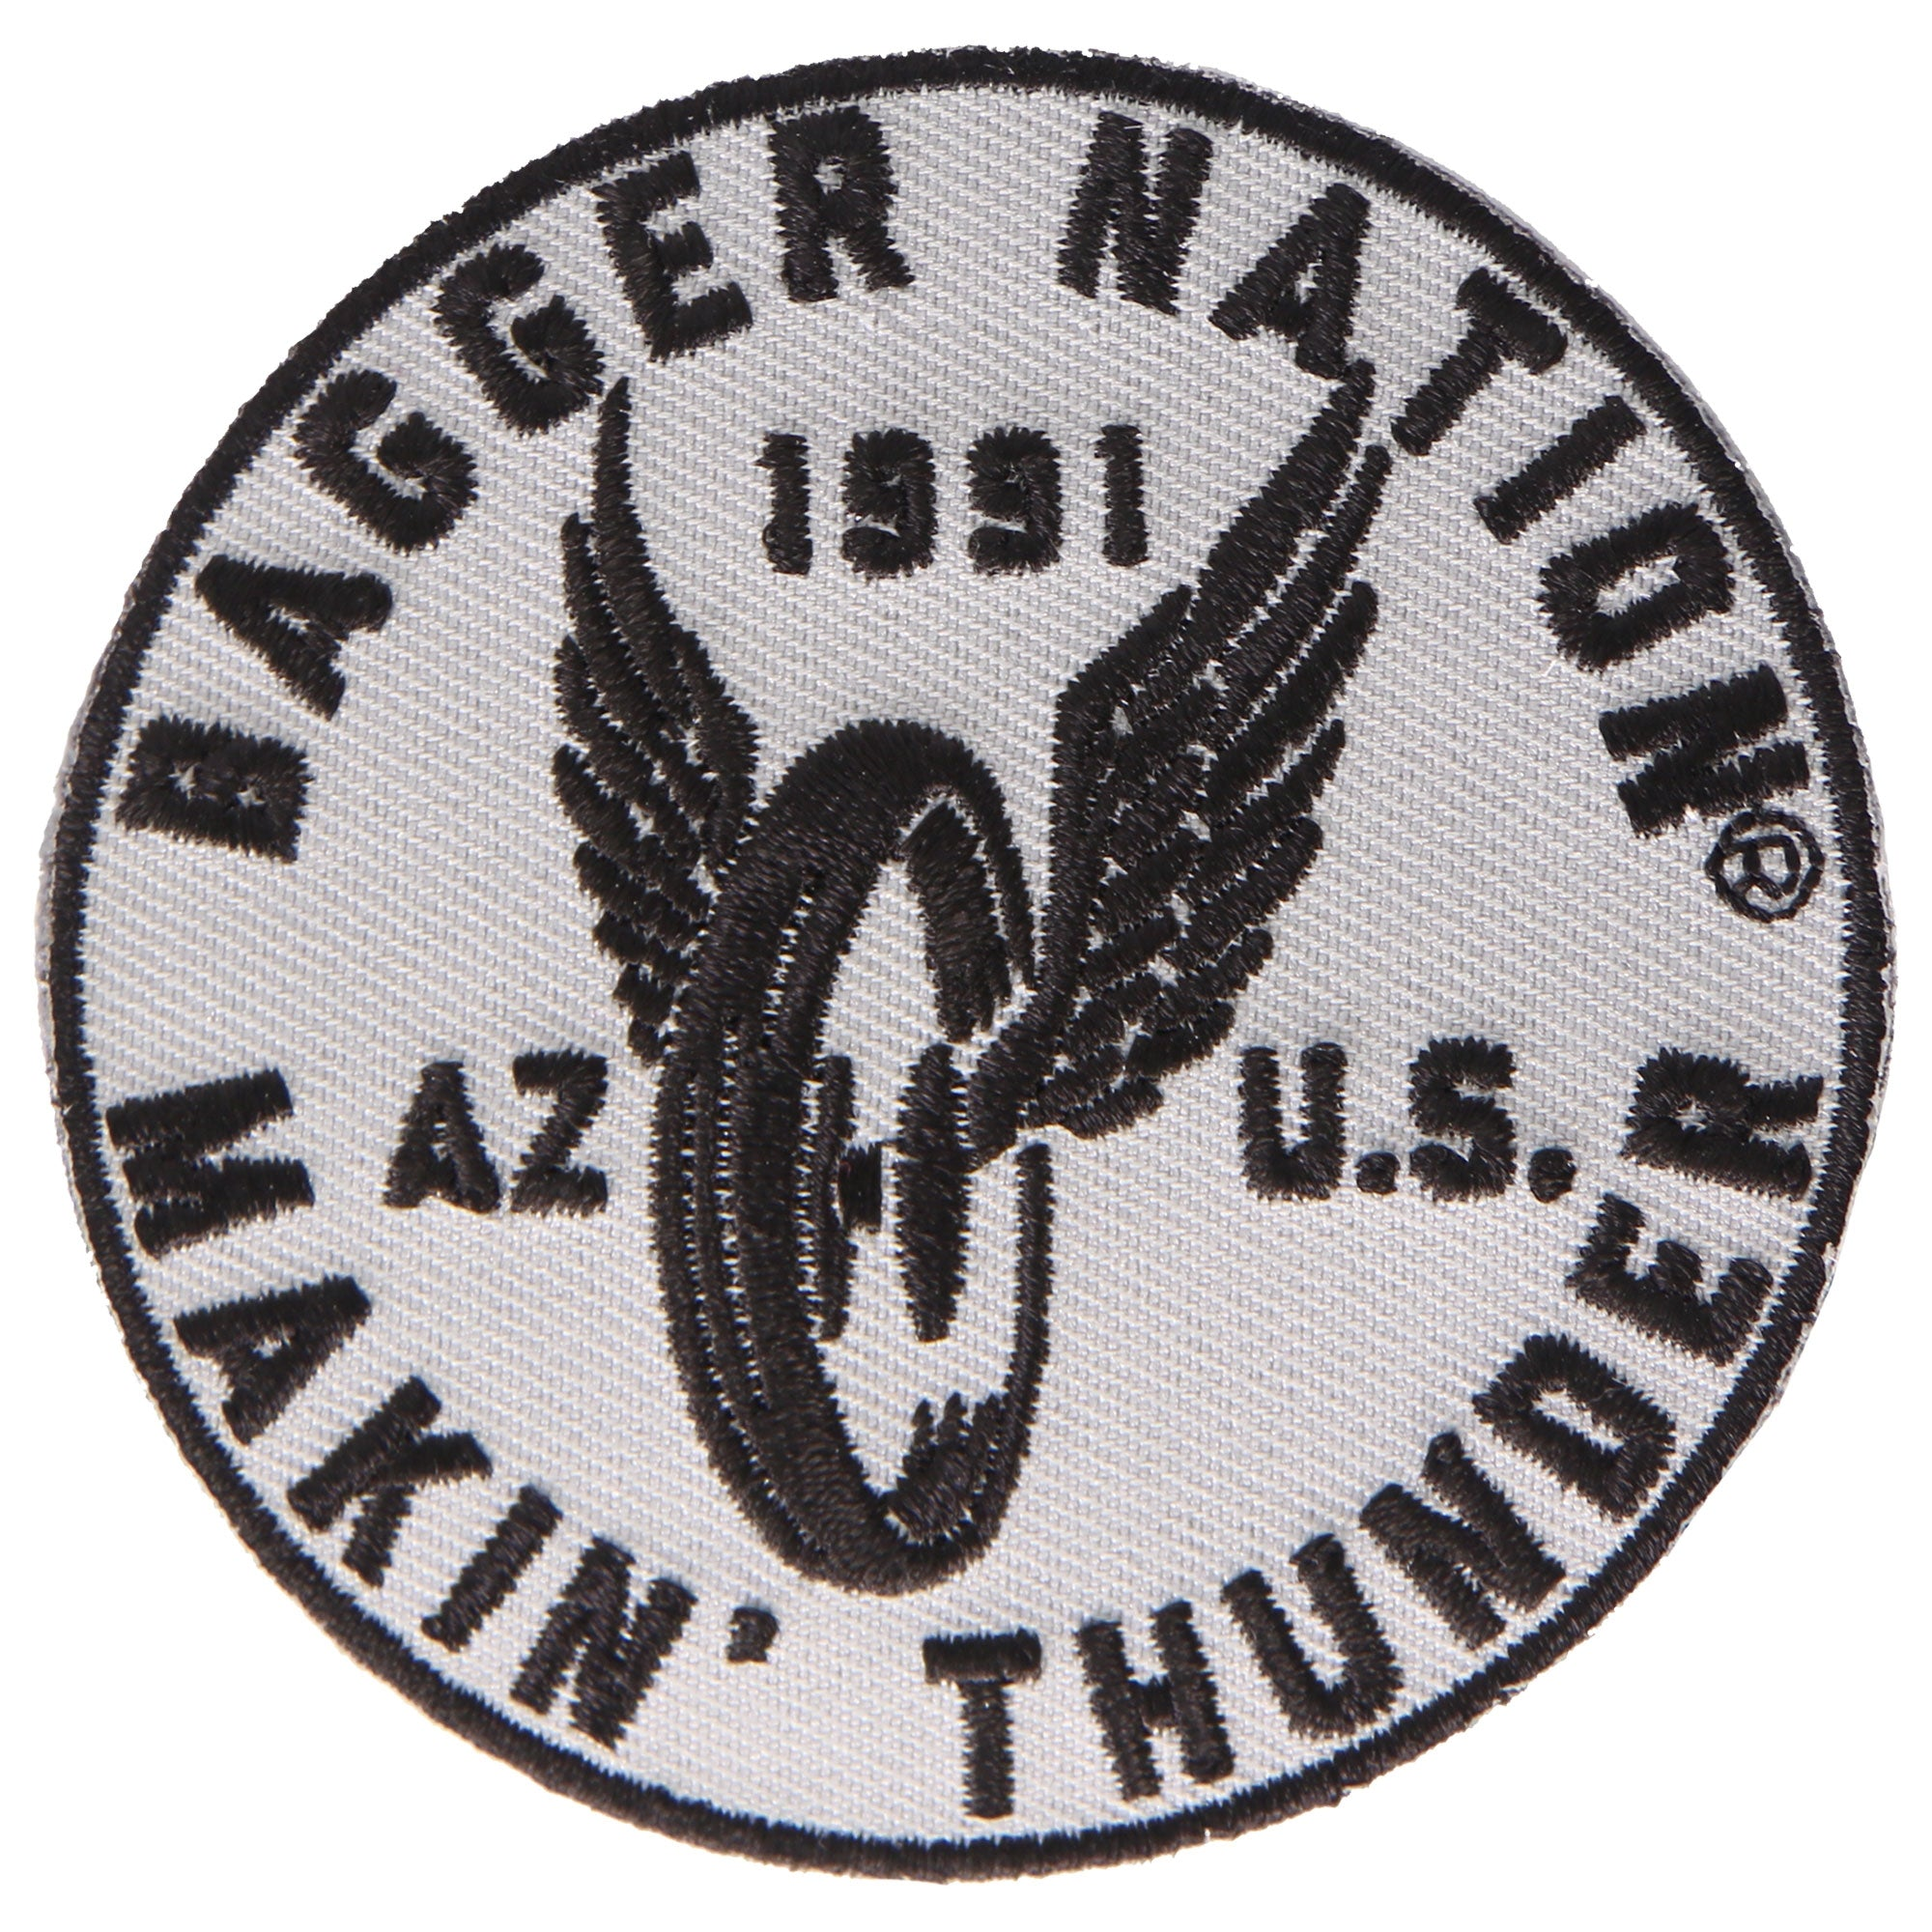 Official Paul Yaffe's Bagger Nation Flying Wheel Patch